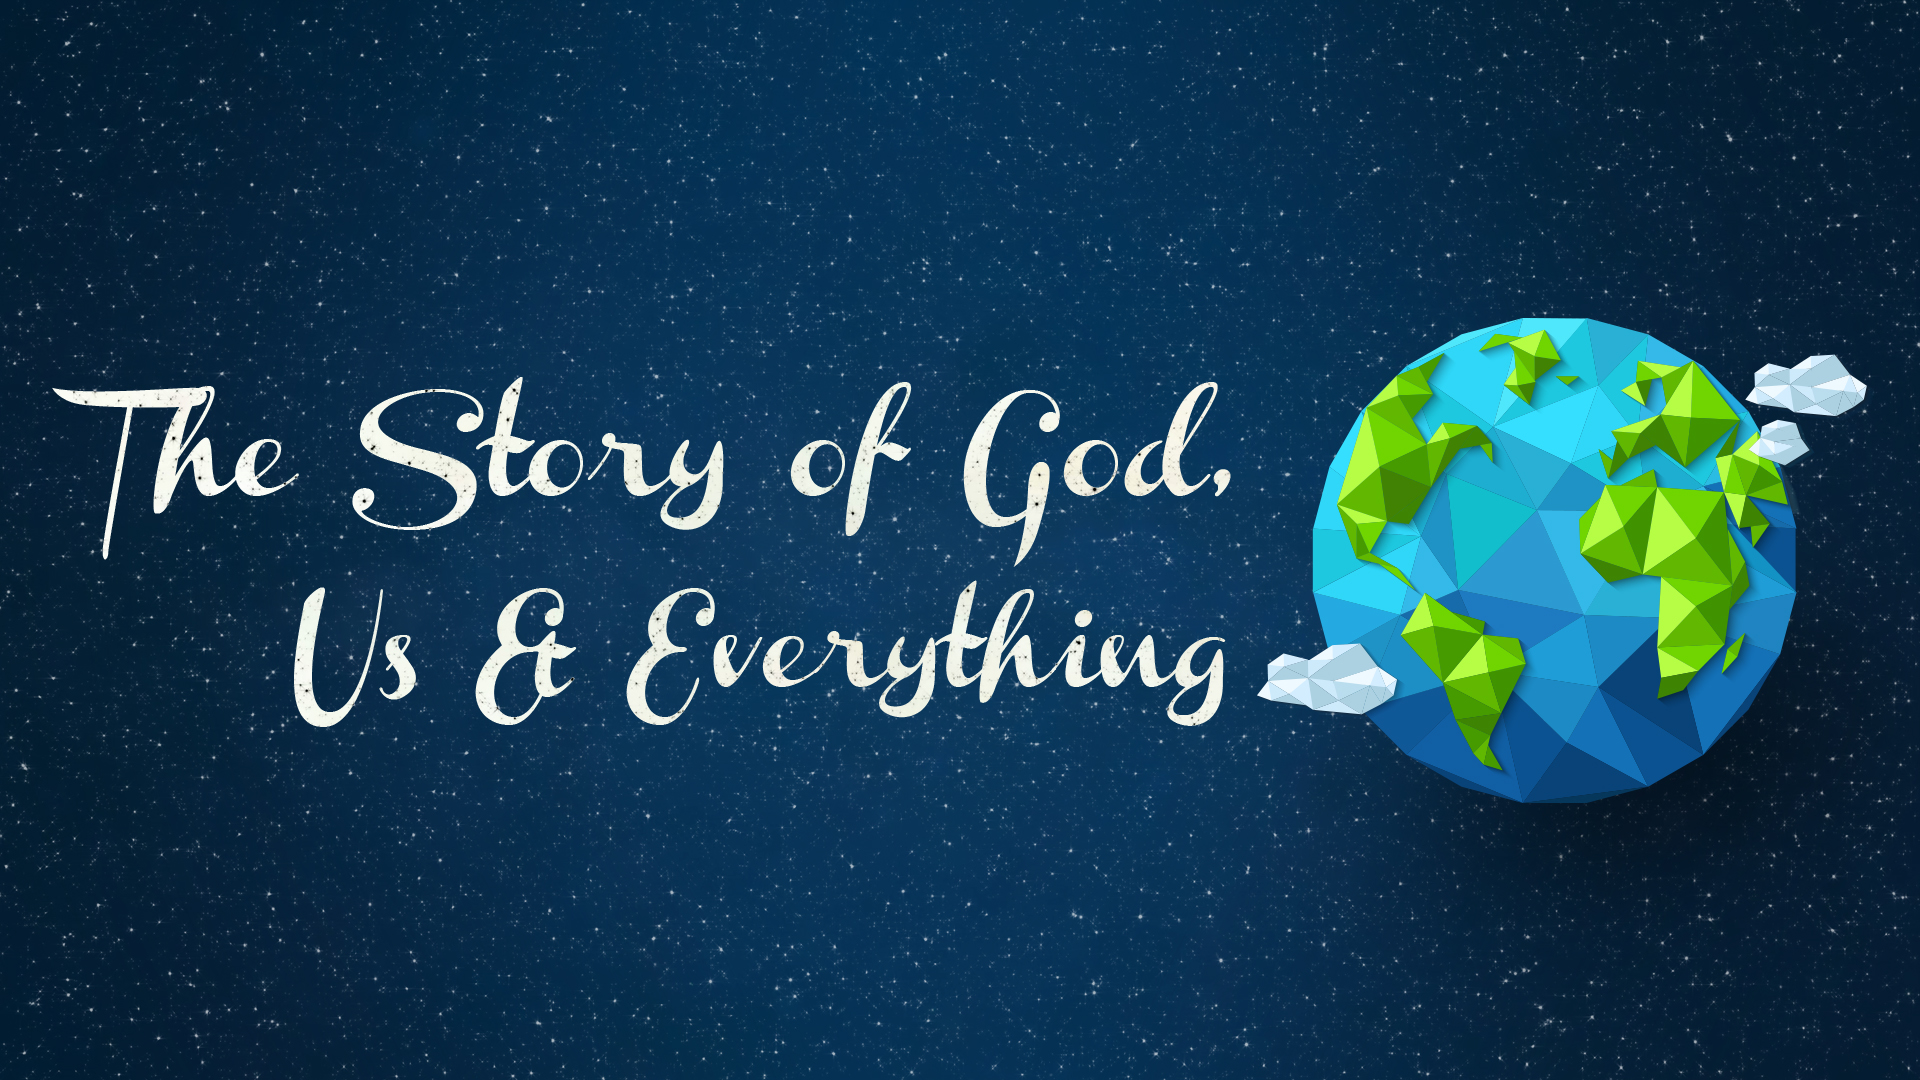 The Story of God, Us & Everything.jpg